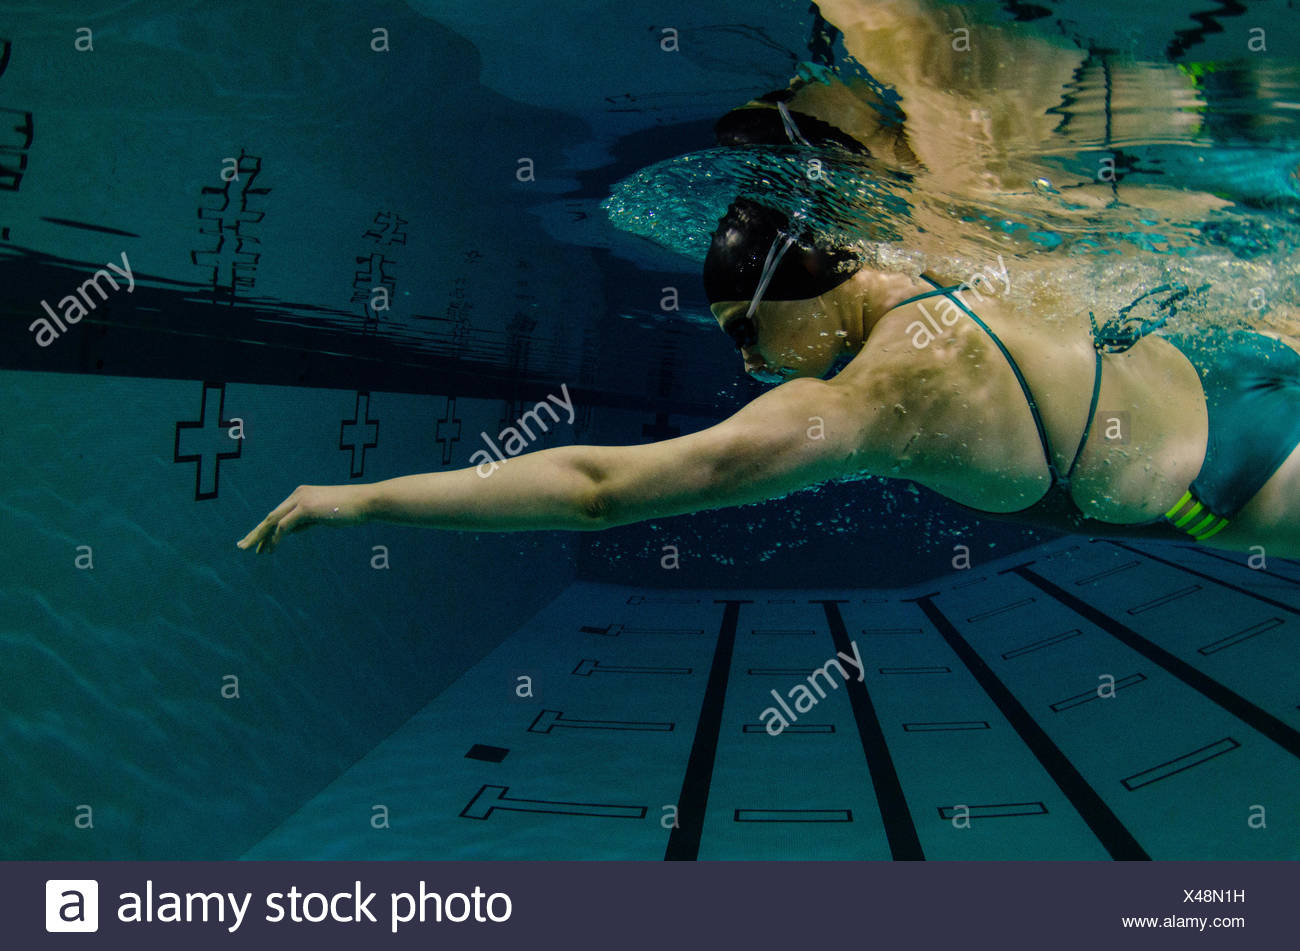 A young woman in a green bathing suit, black swim cap, and goggles, swims freestyle. - Stock Image